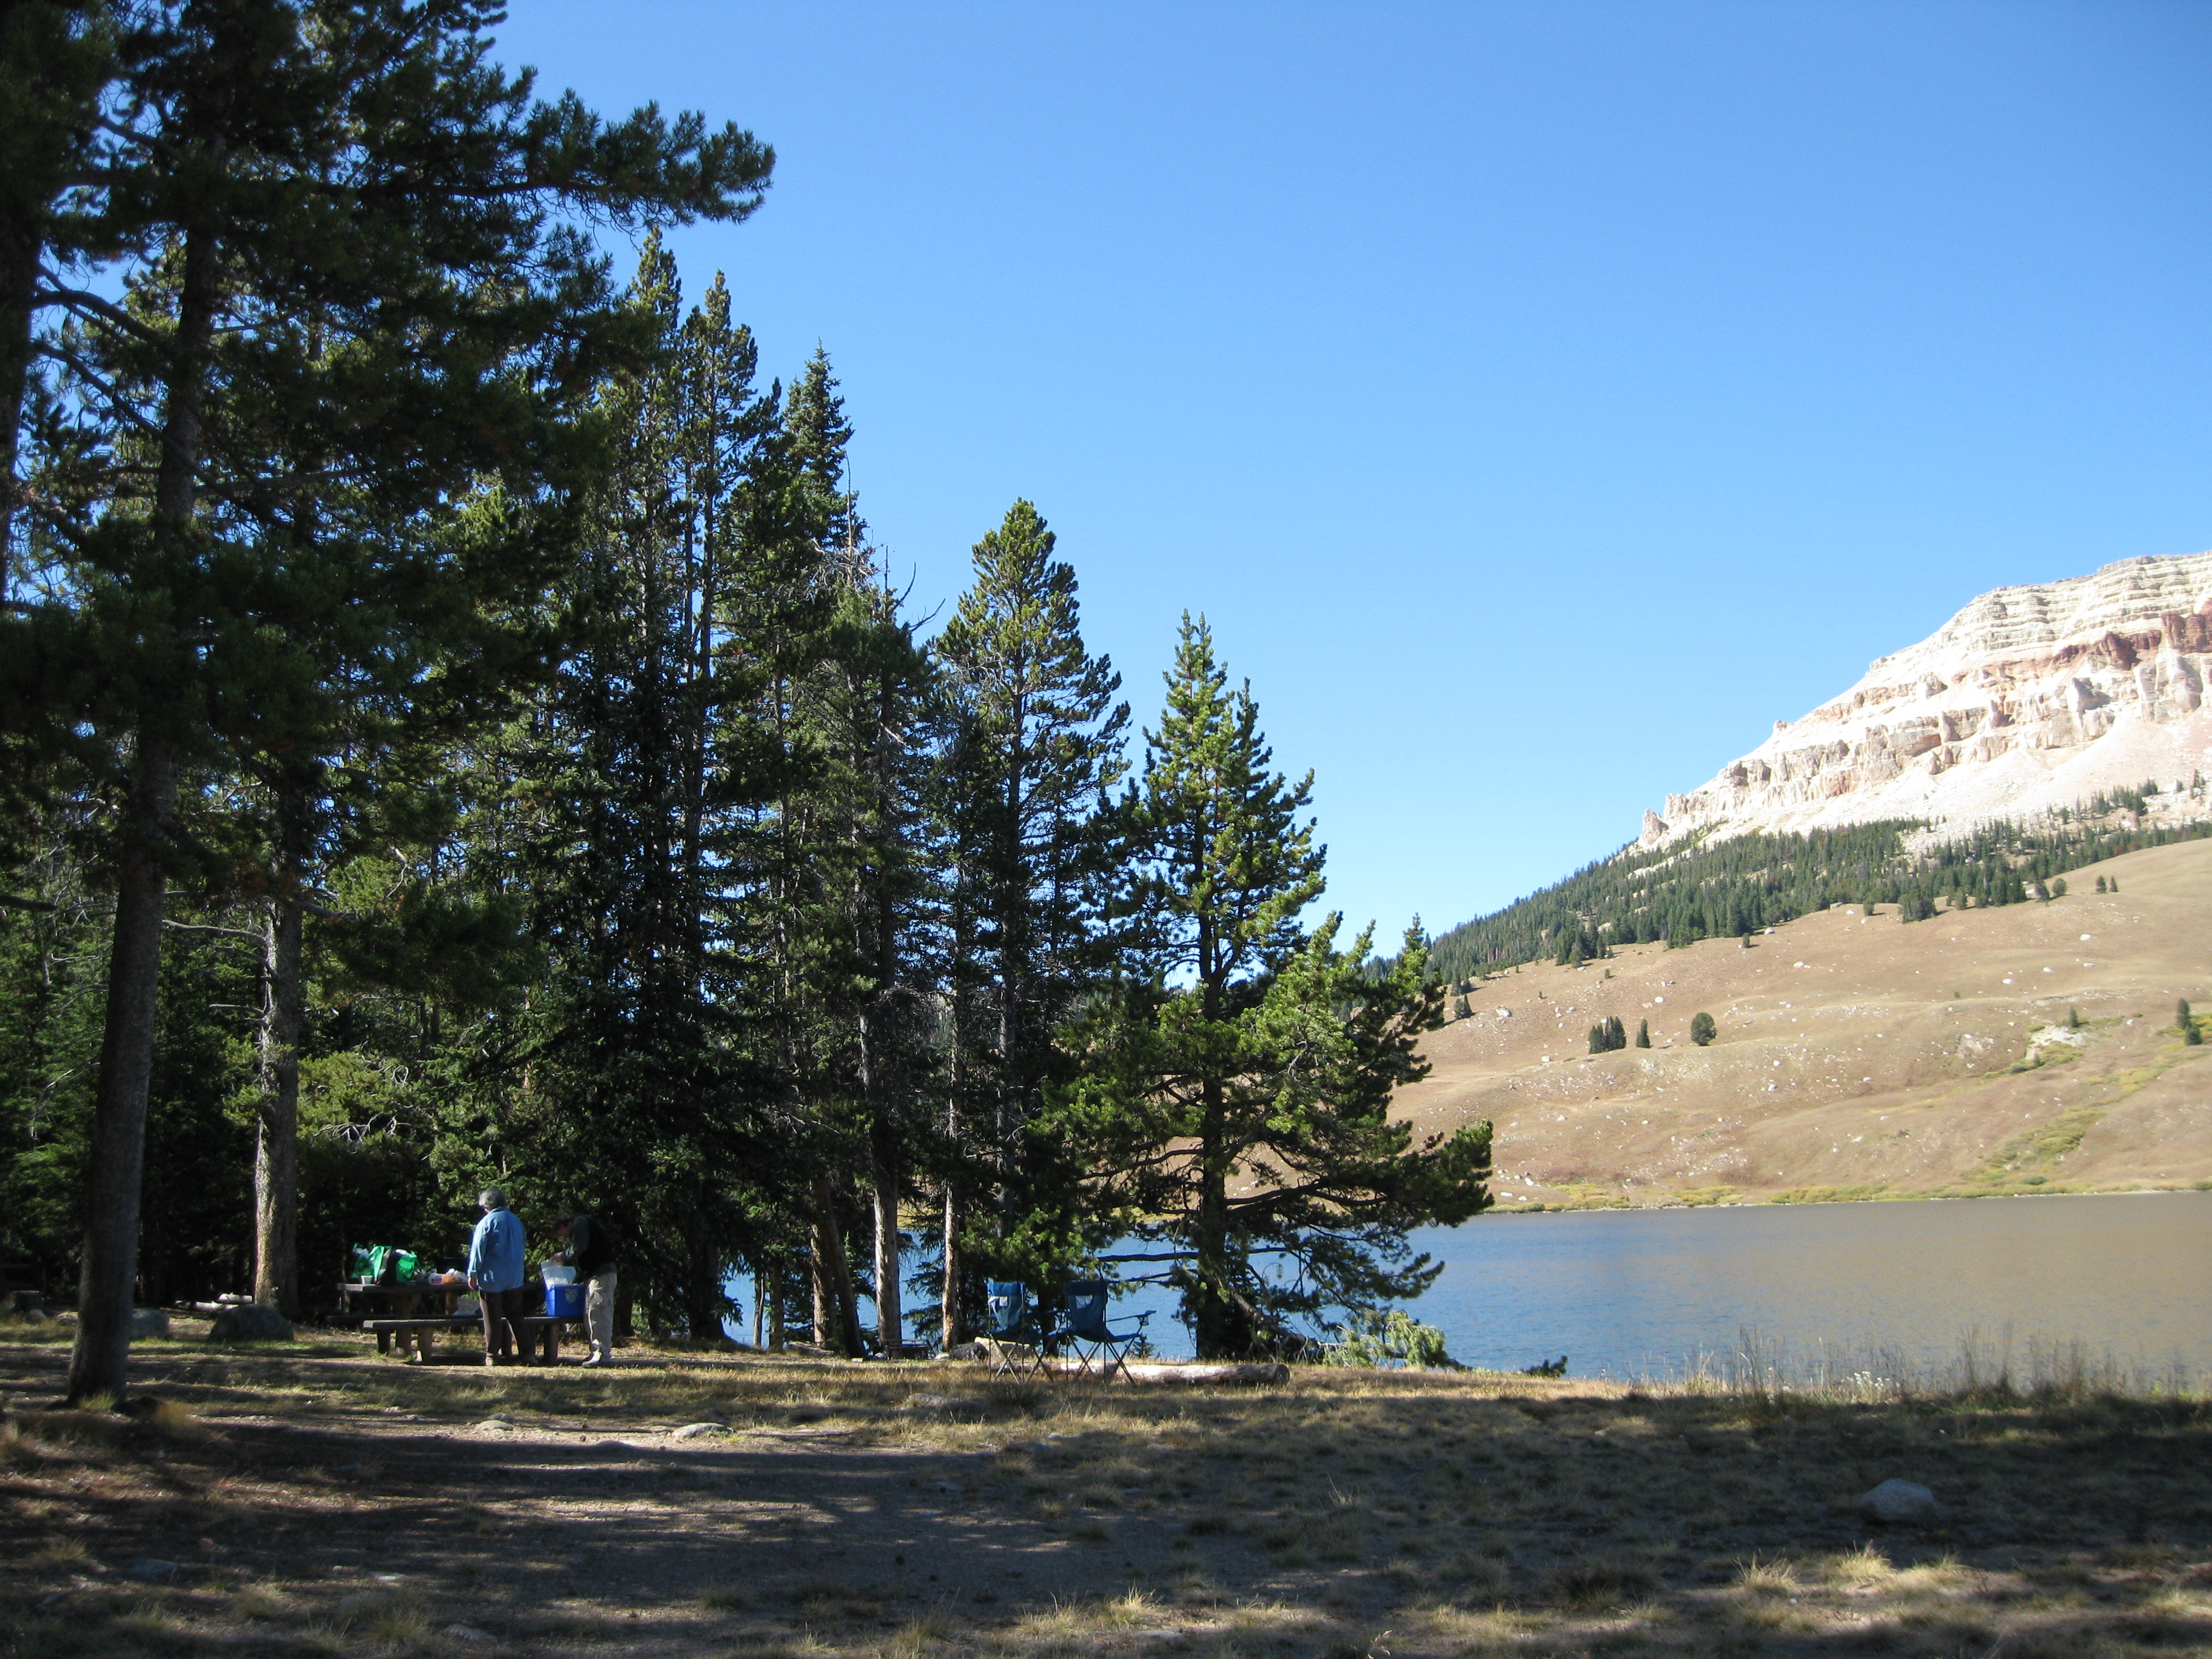 Photograph of Beartooth Lake Campground